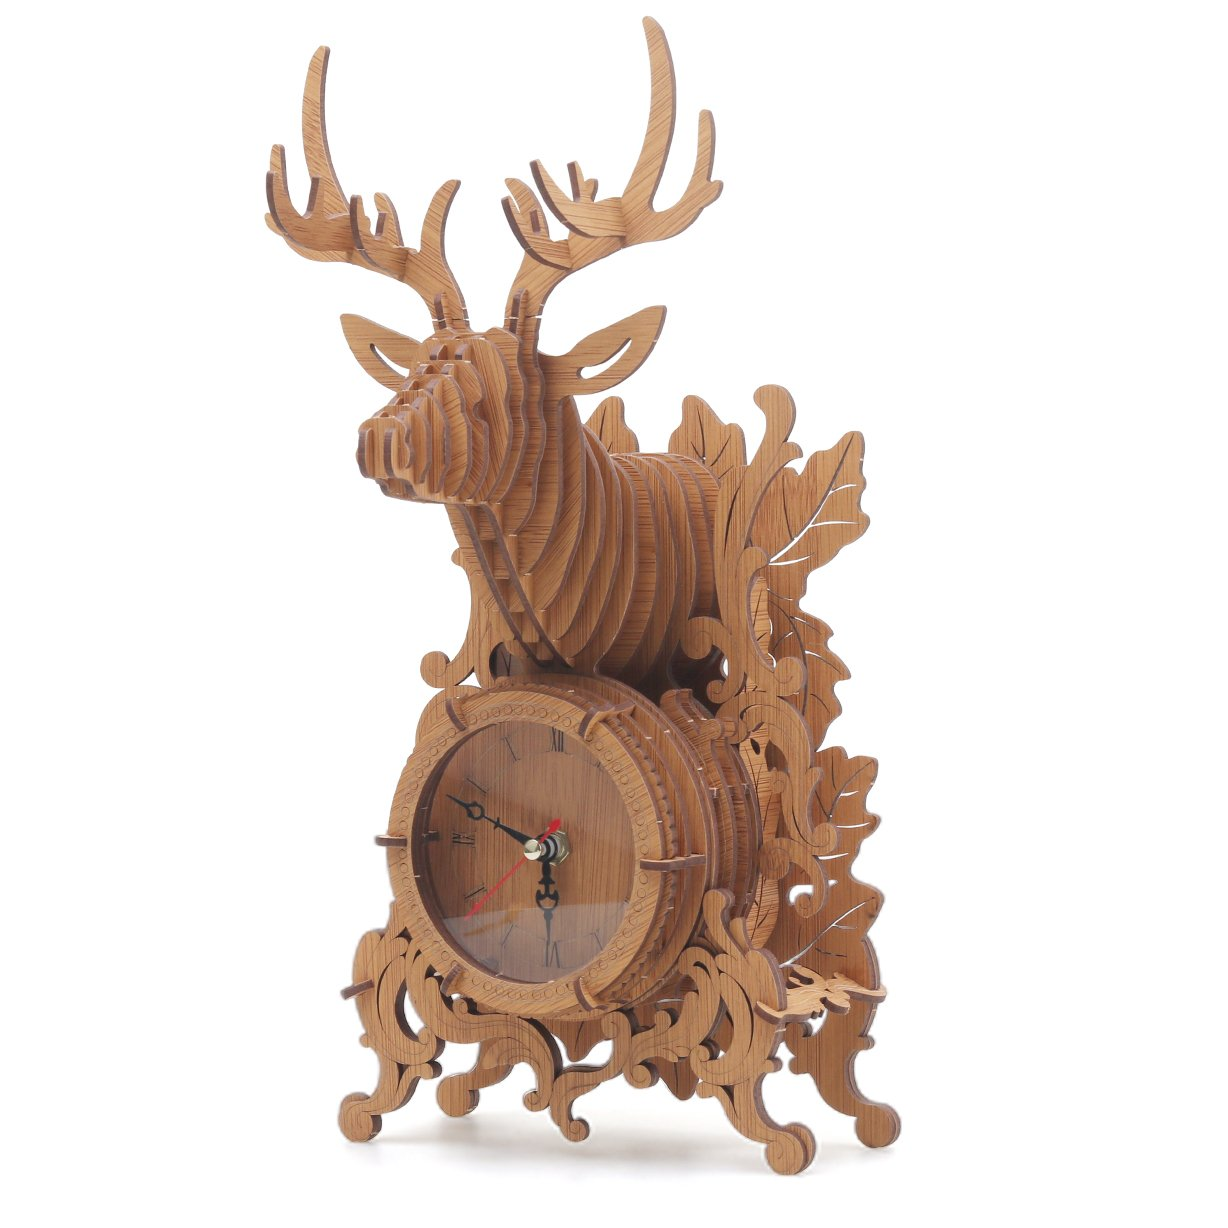 Amy & Benton 3D Wooden Puzzles Reindeer Desk Clock--52 Jigsaw (Dark)